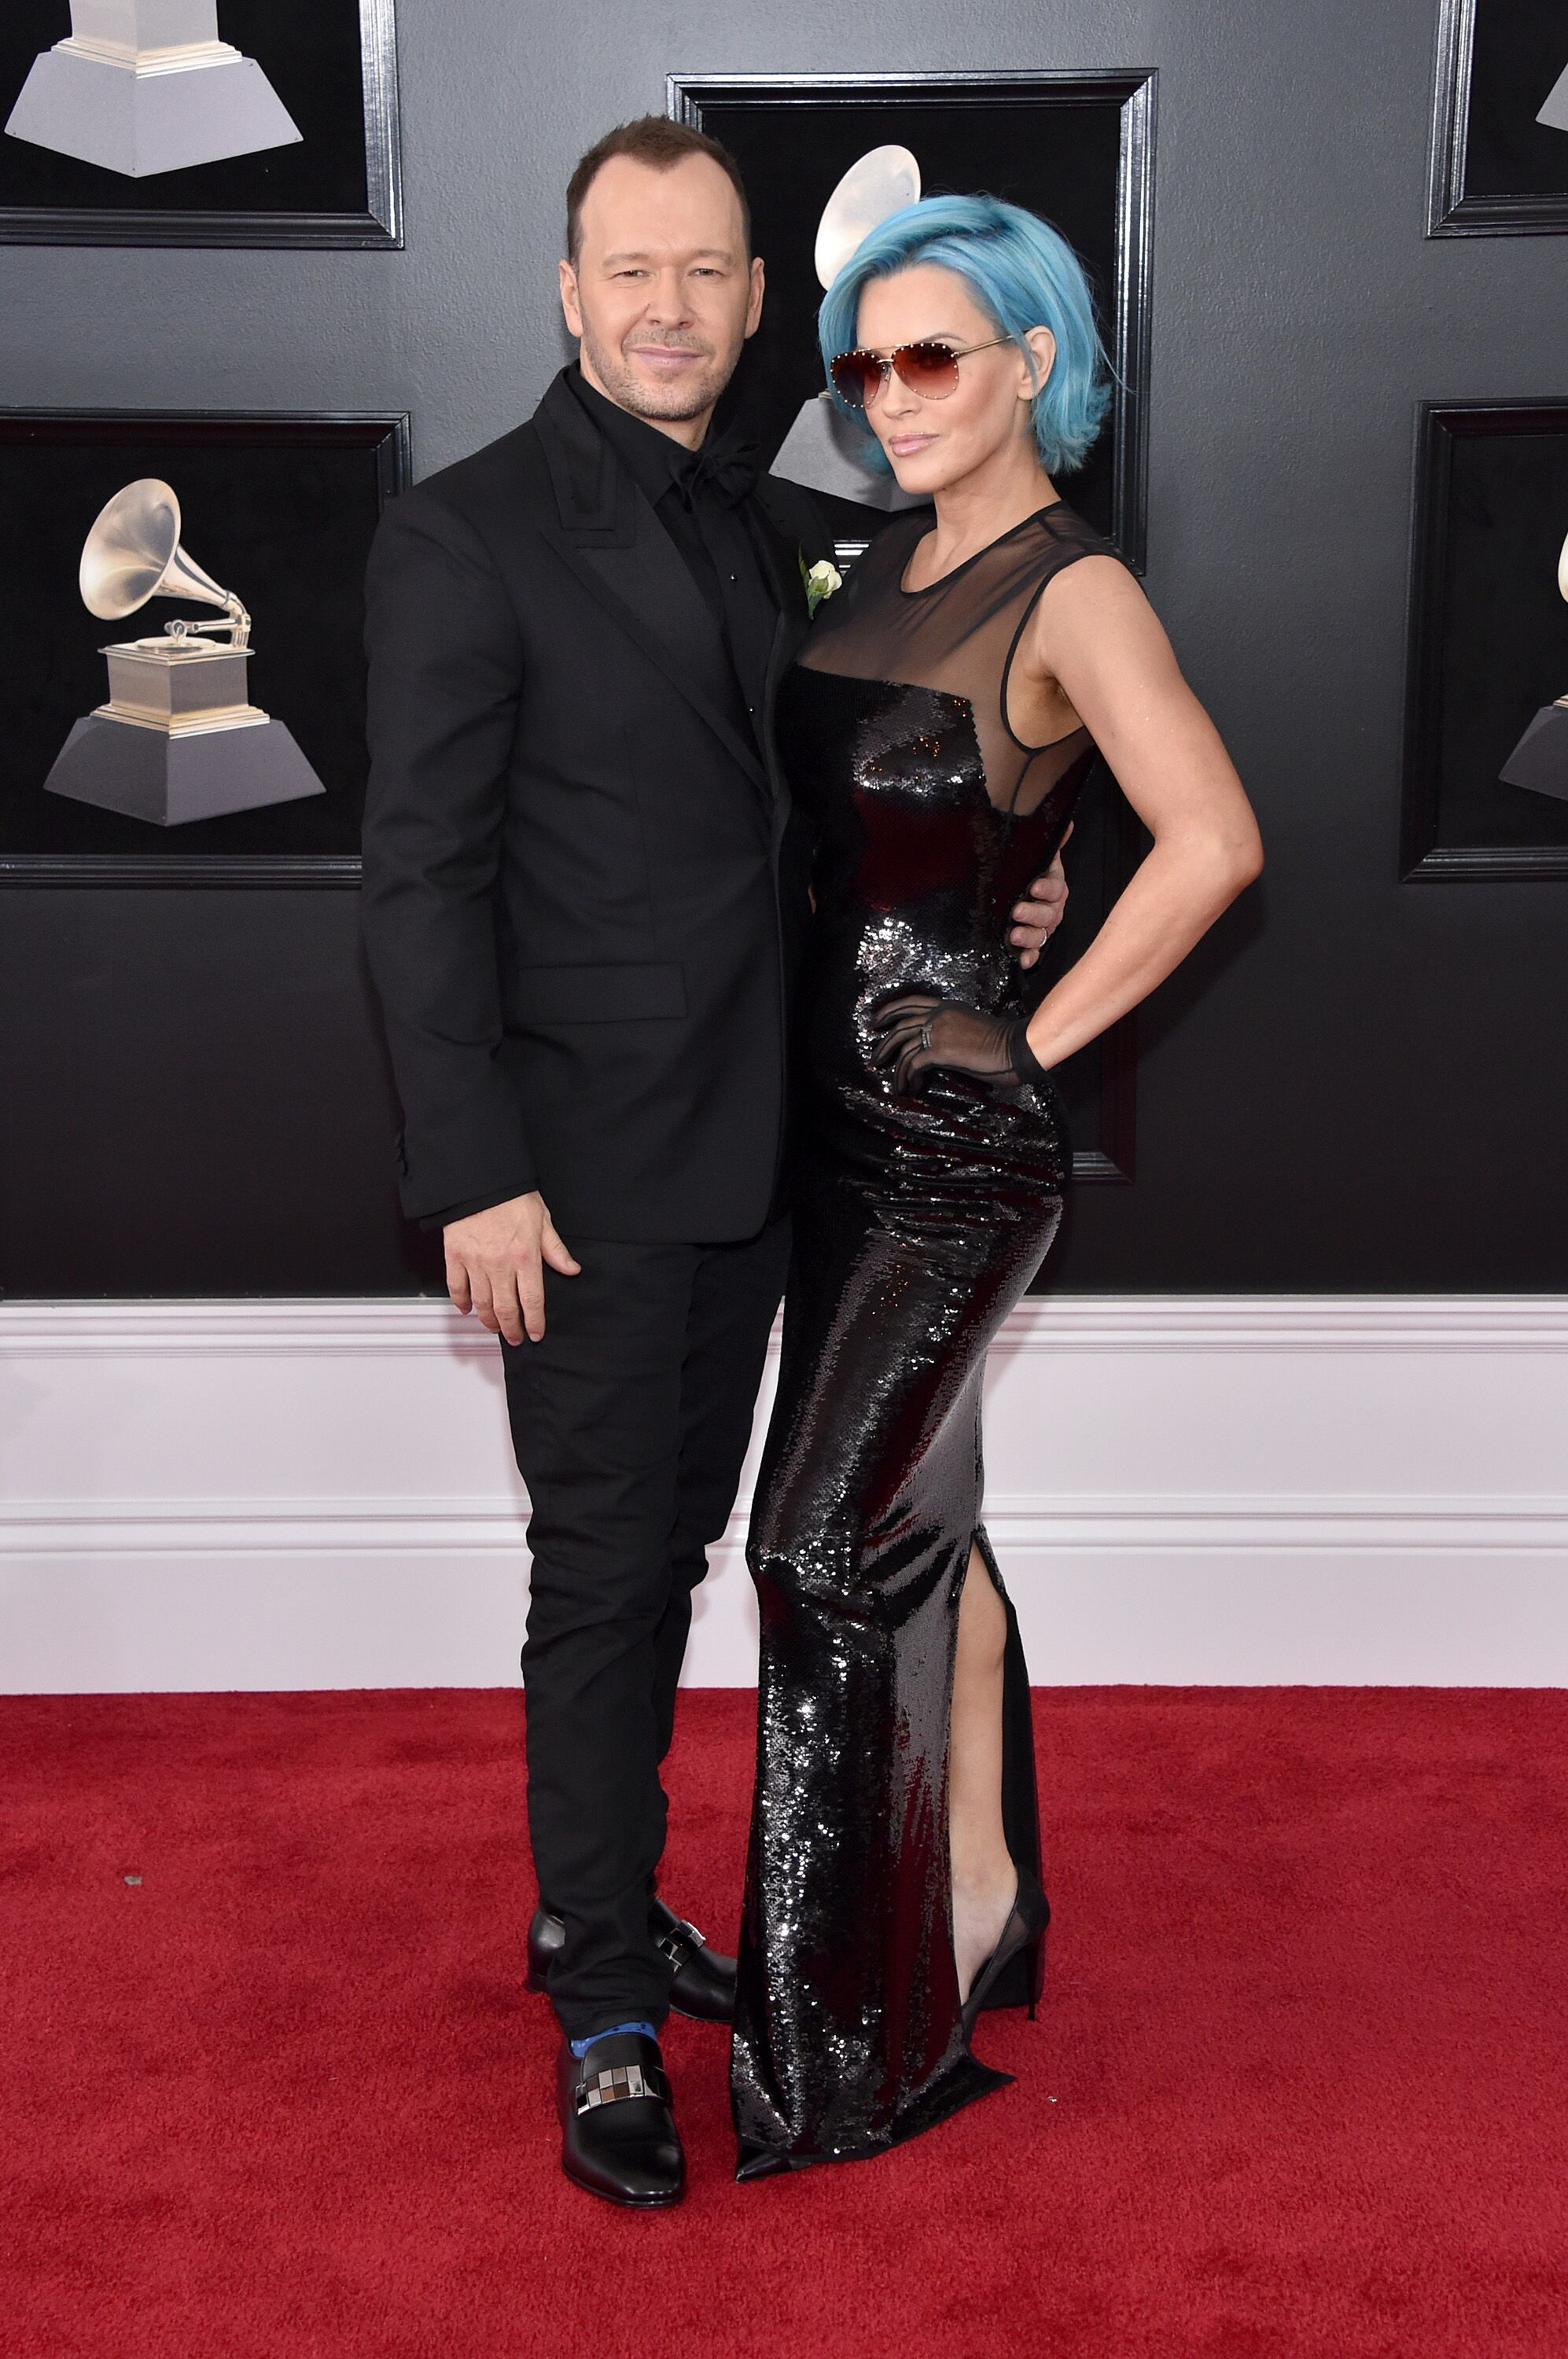 Donnie Wahlberg and Jenny McCarthy attend the 60th Annual GRAMMY Awards at Madison Square Garden on January 28, 2018 in New York City | Photo: Getty Images